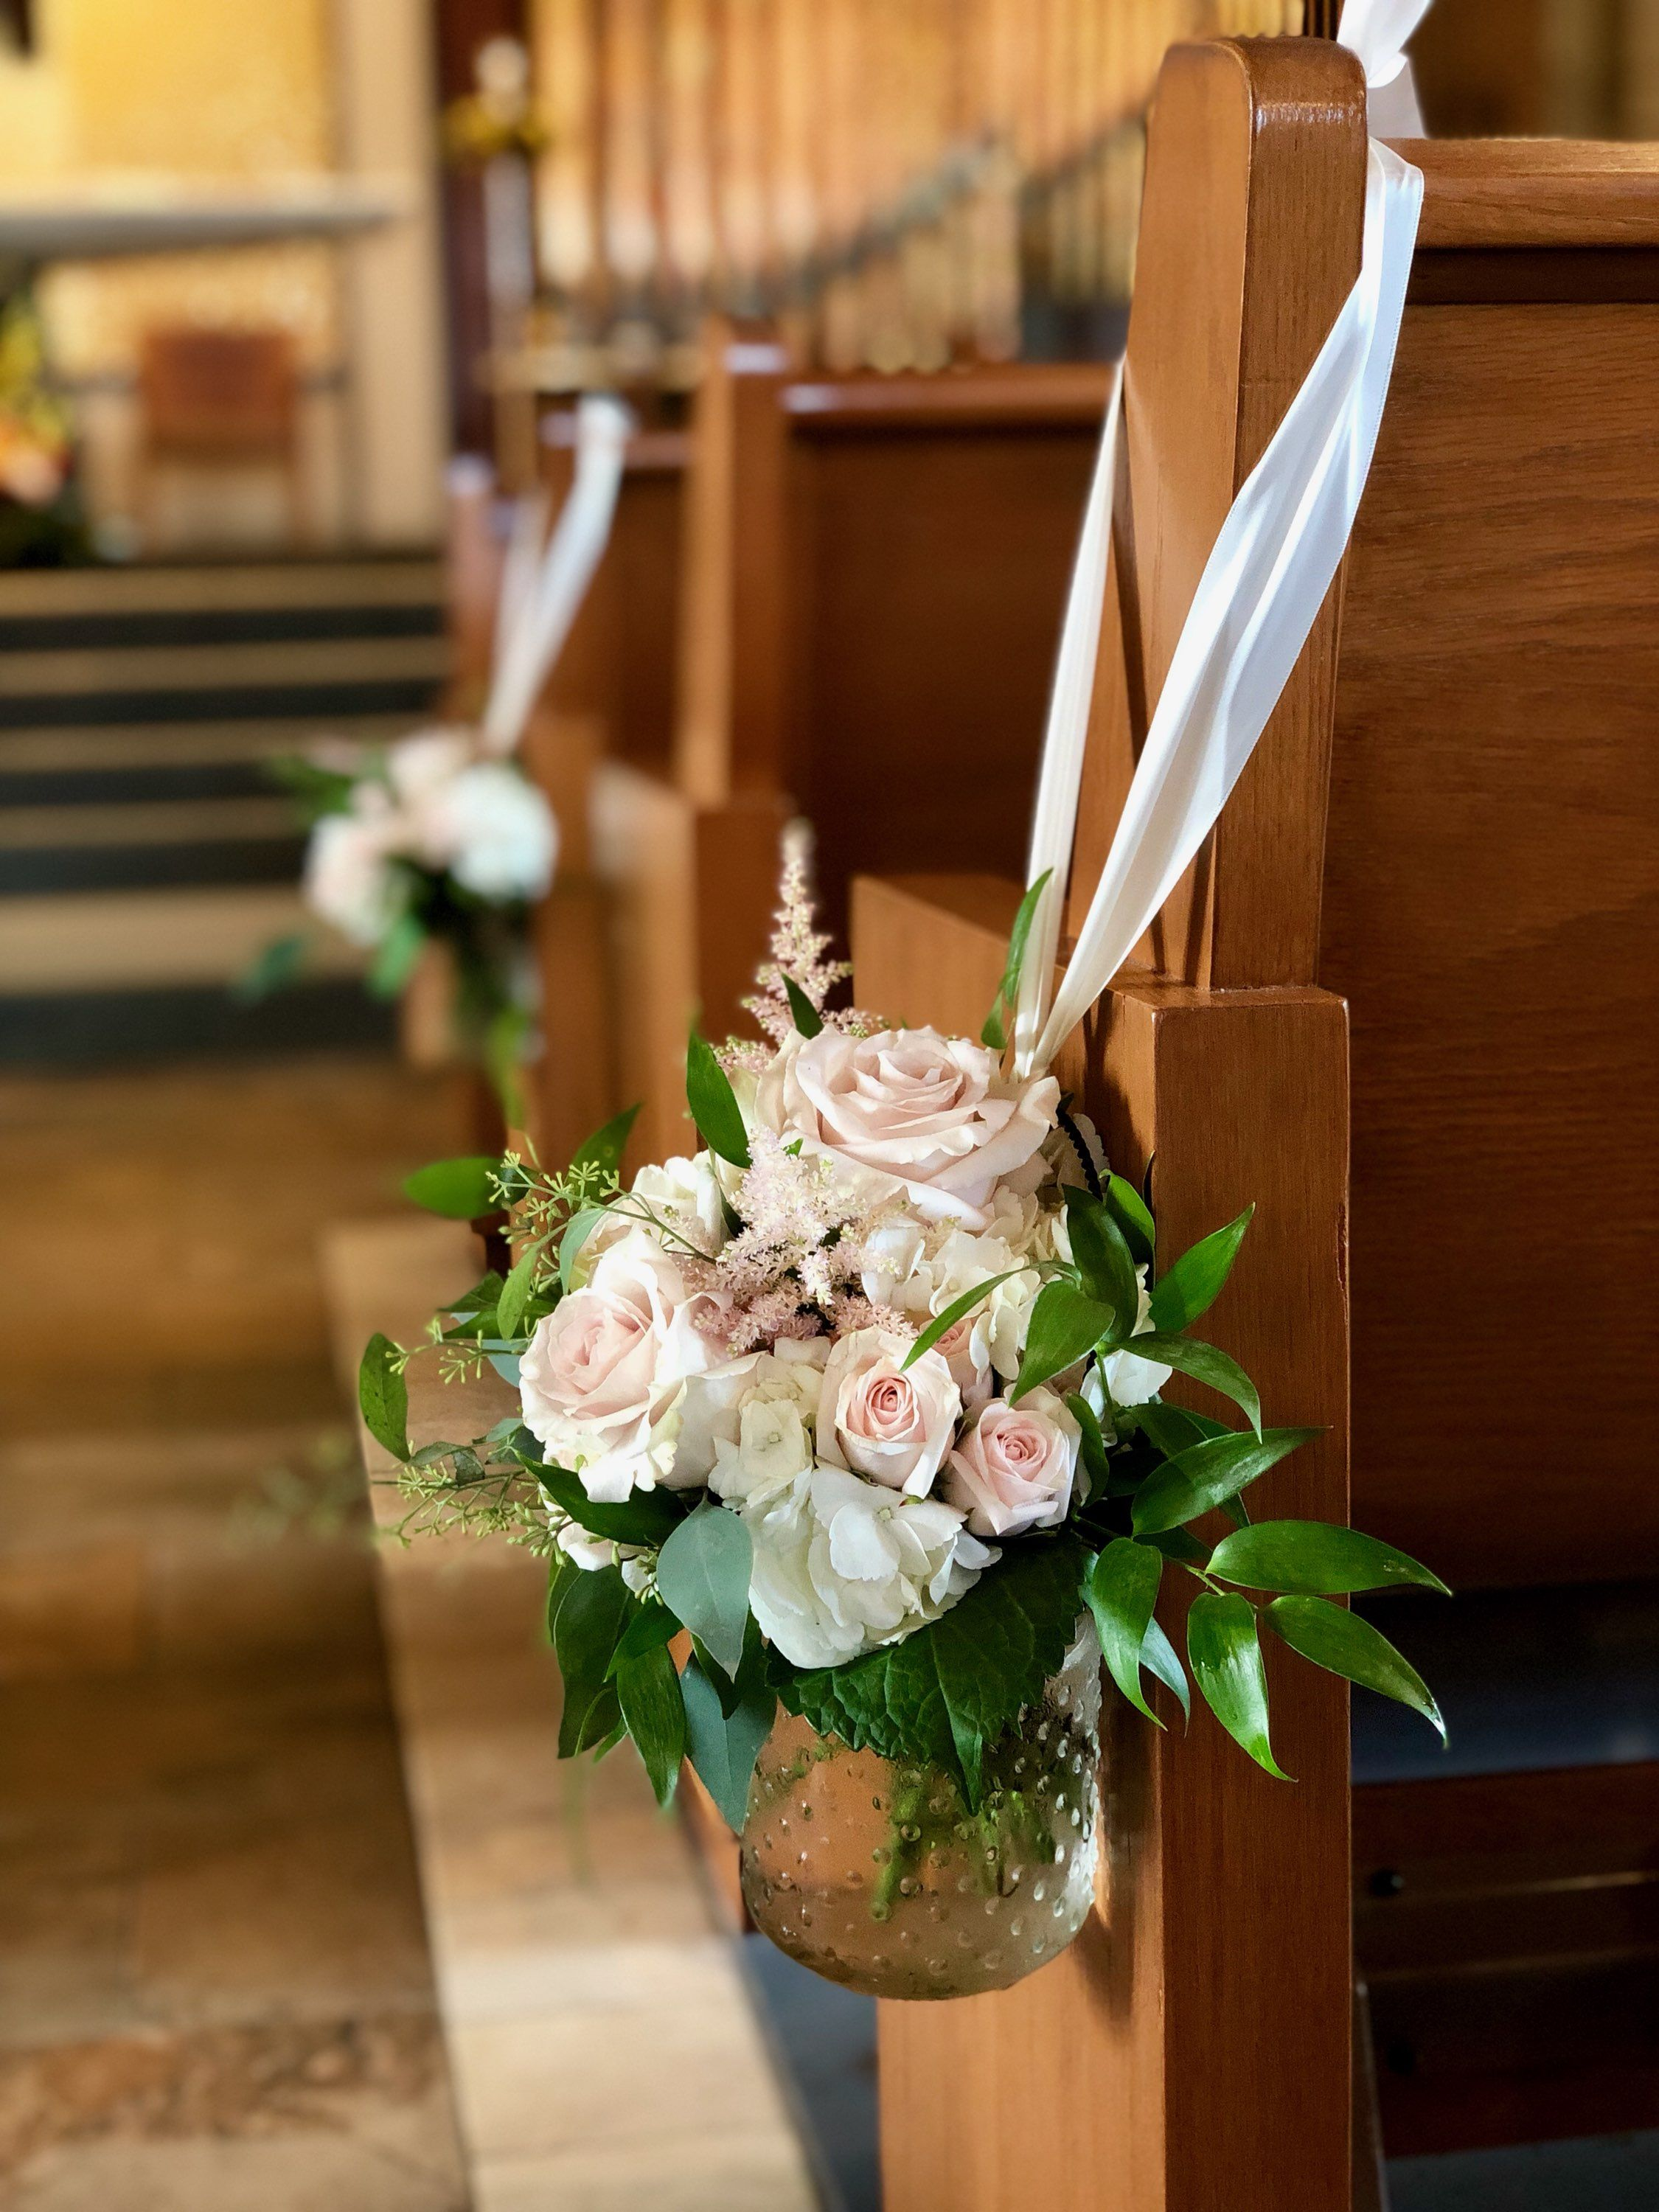 Dress up your aisle with hanging vases designed by